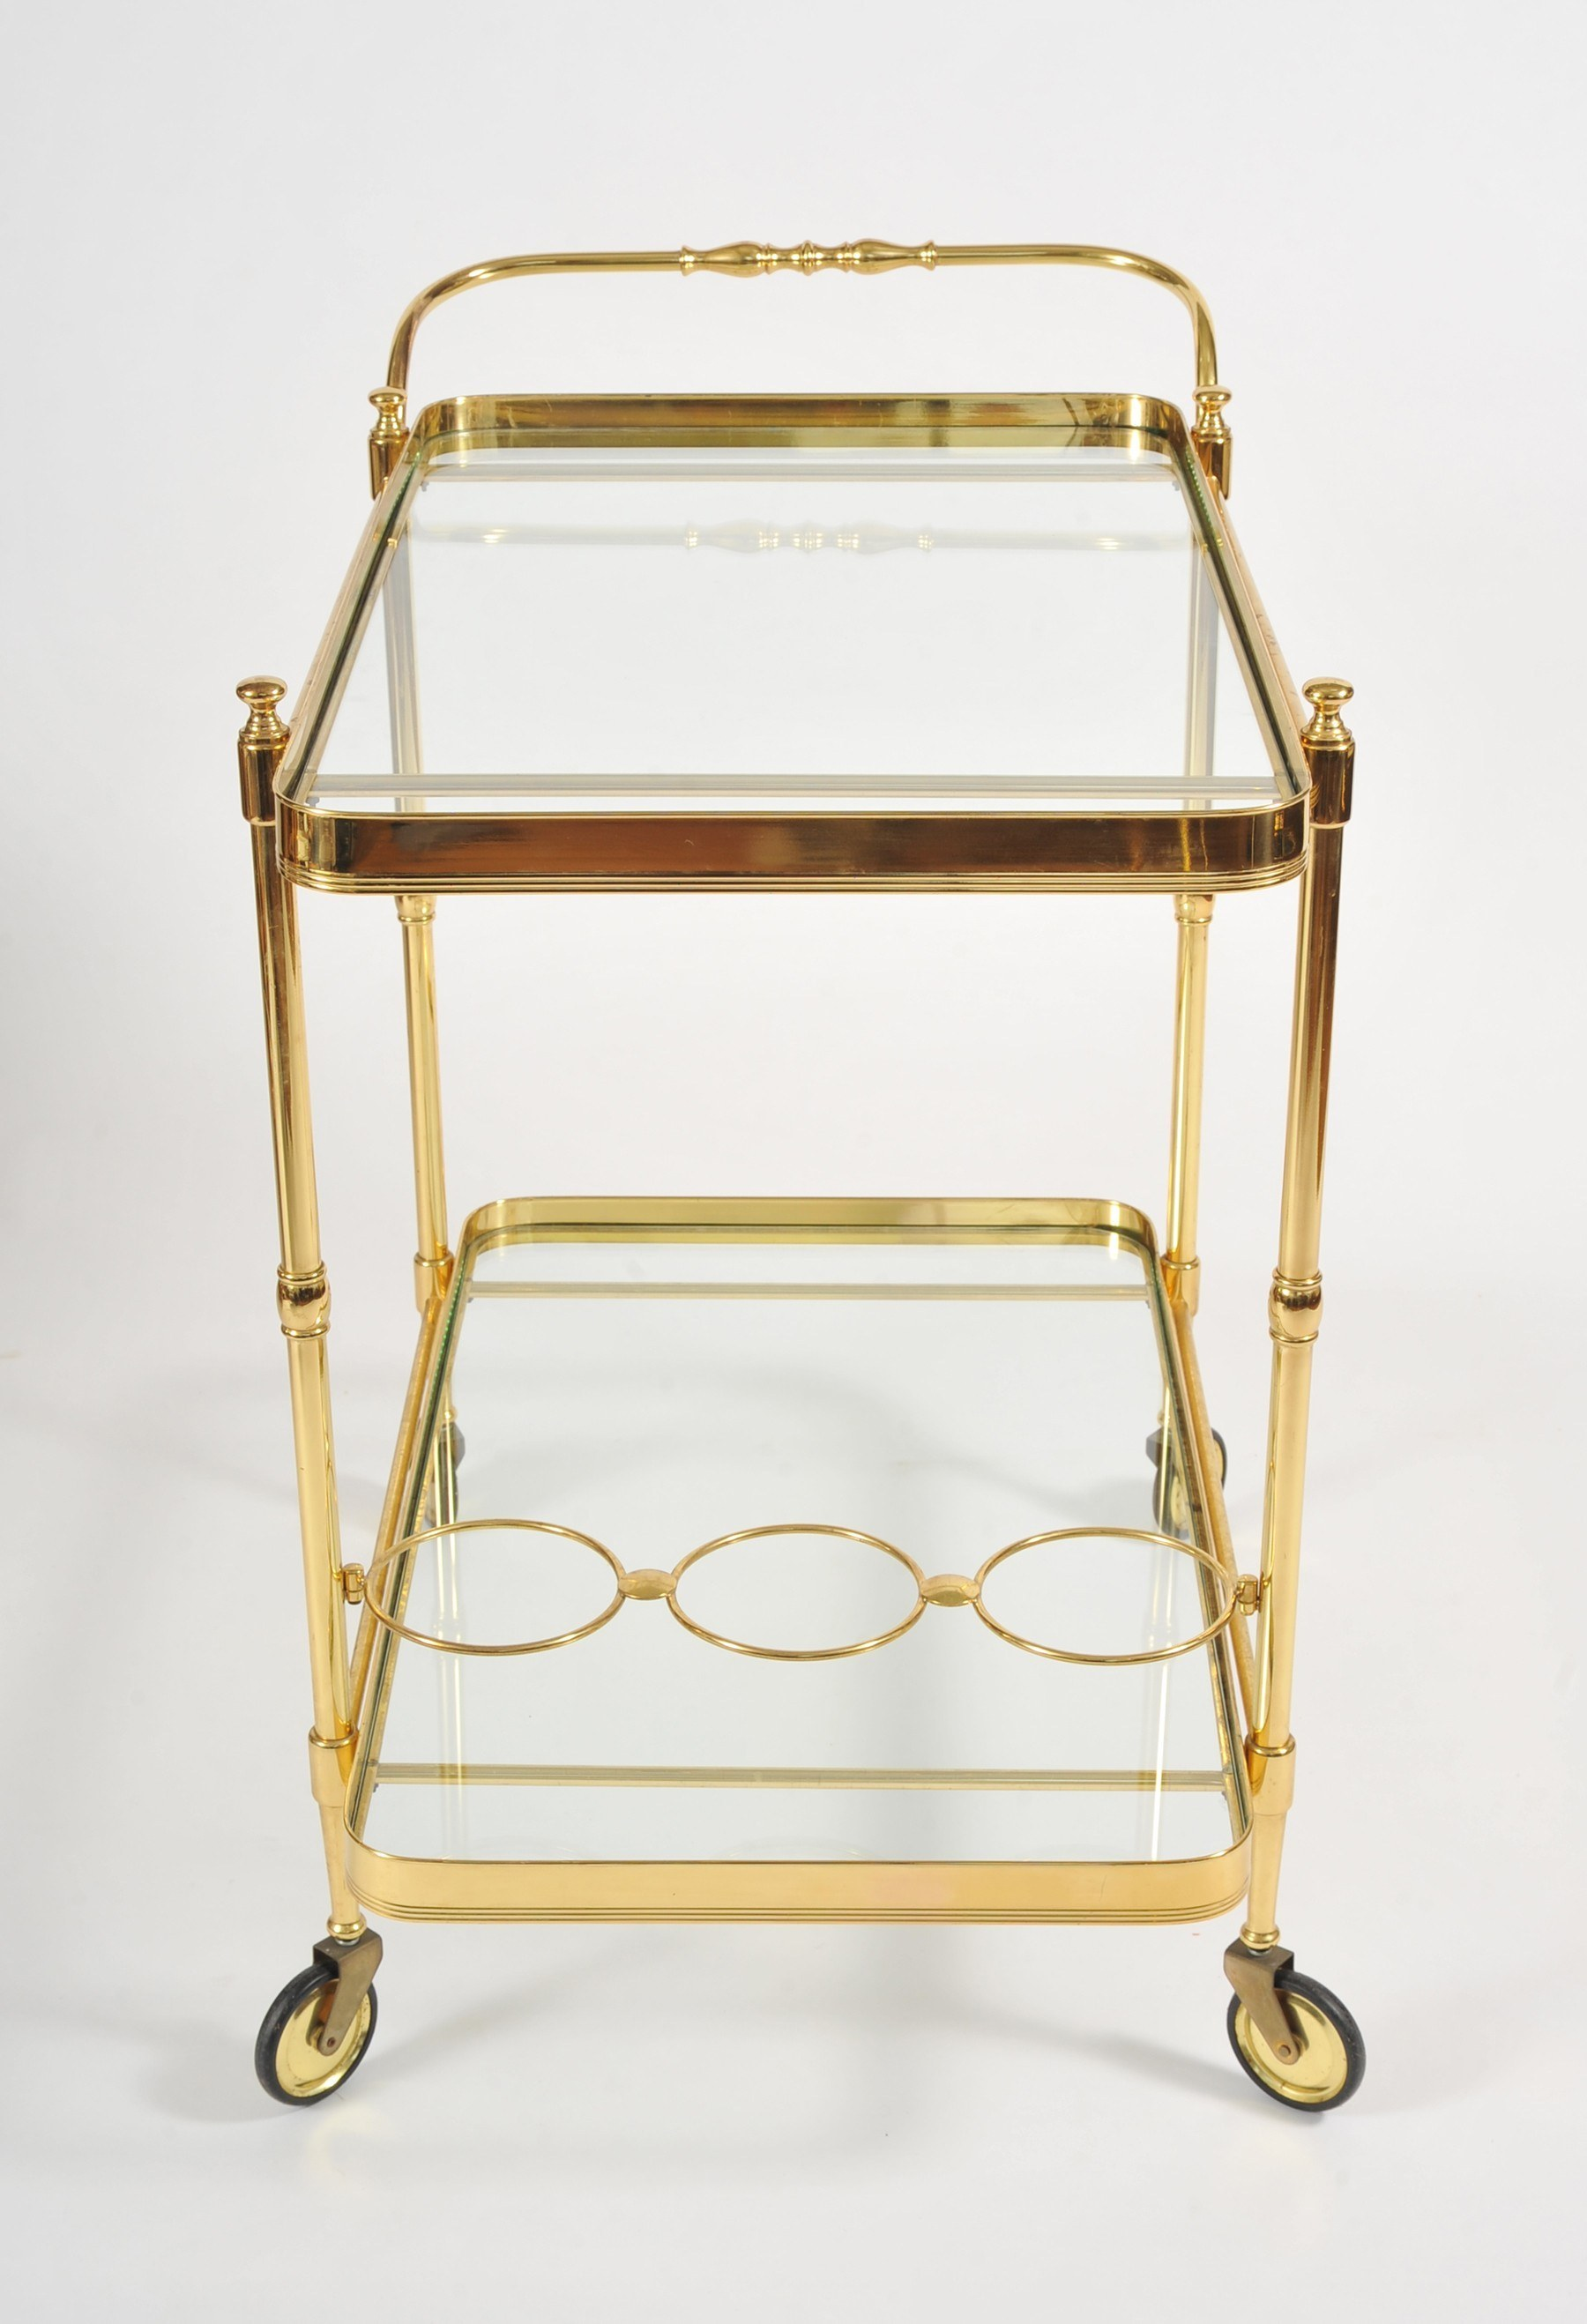 Valerie Wade Ams656 1950S Italian Brass Drinks Trolley 03